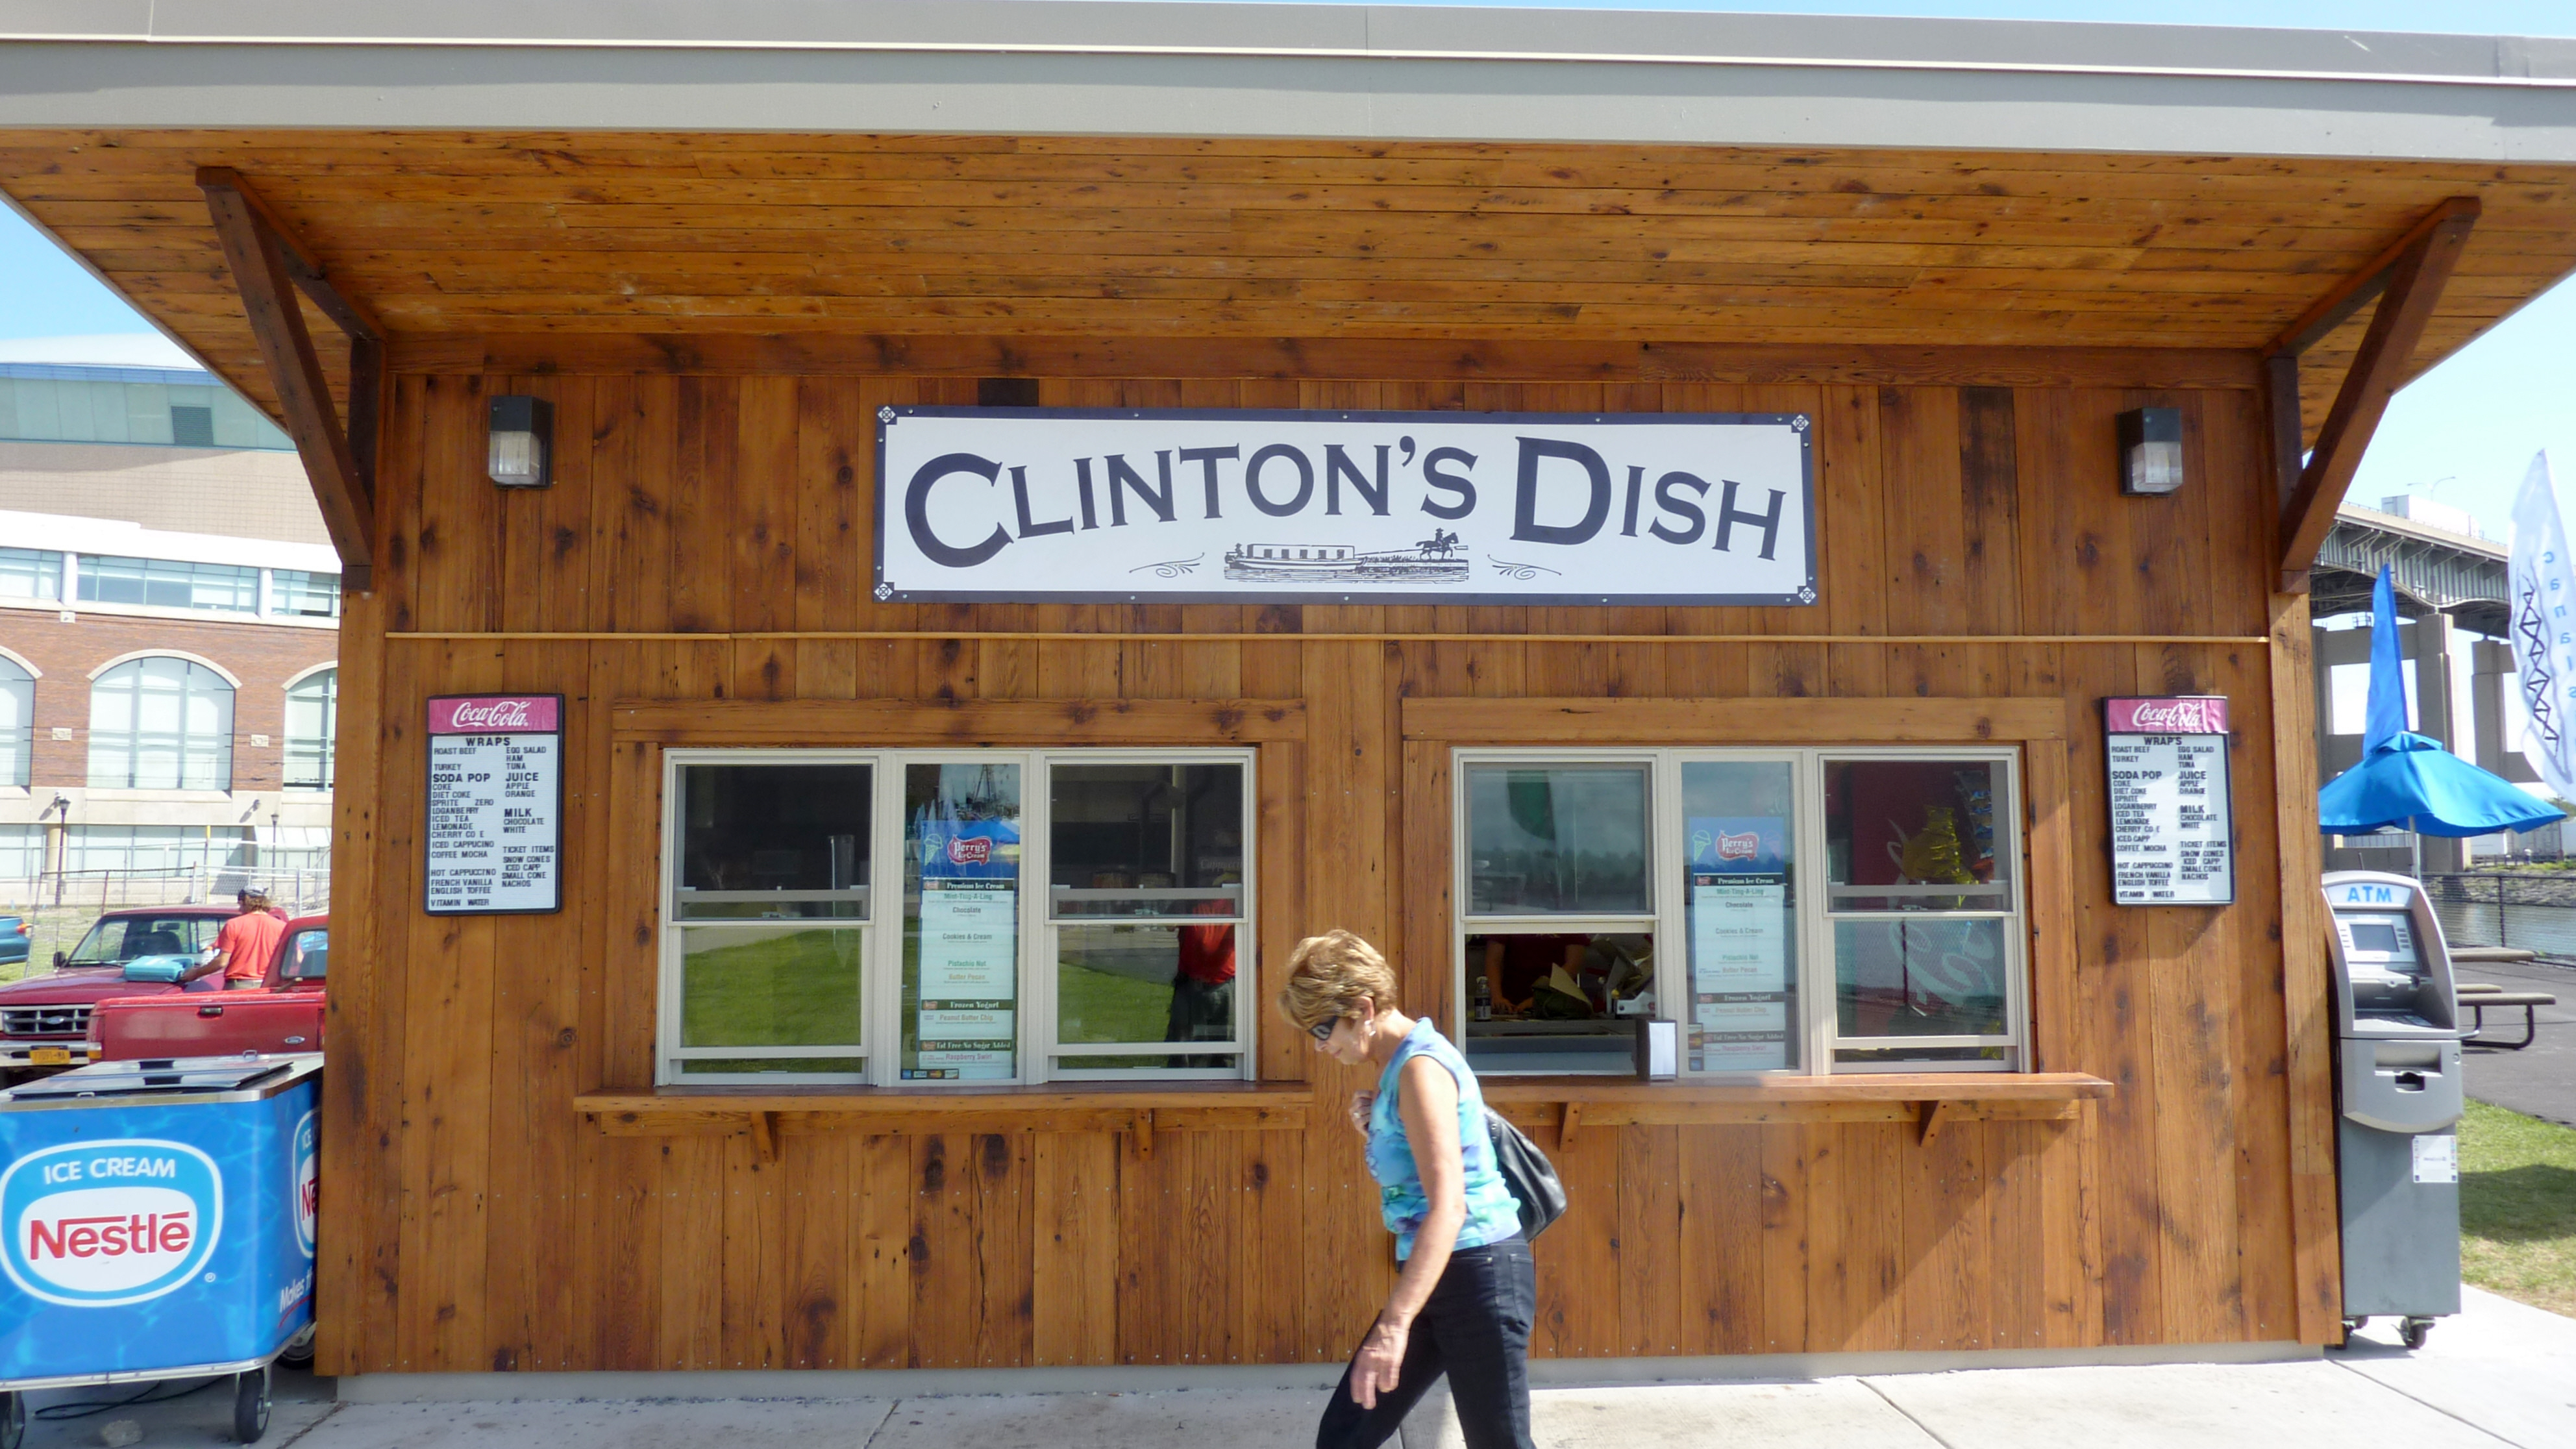 Clinton's Dish, a fast food stand at Canalside, Buffalo. Reclaimed wood siding on SIP panel construction.